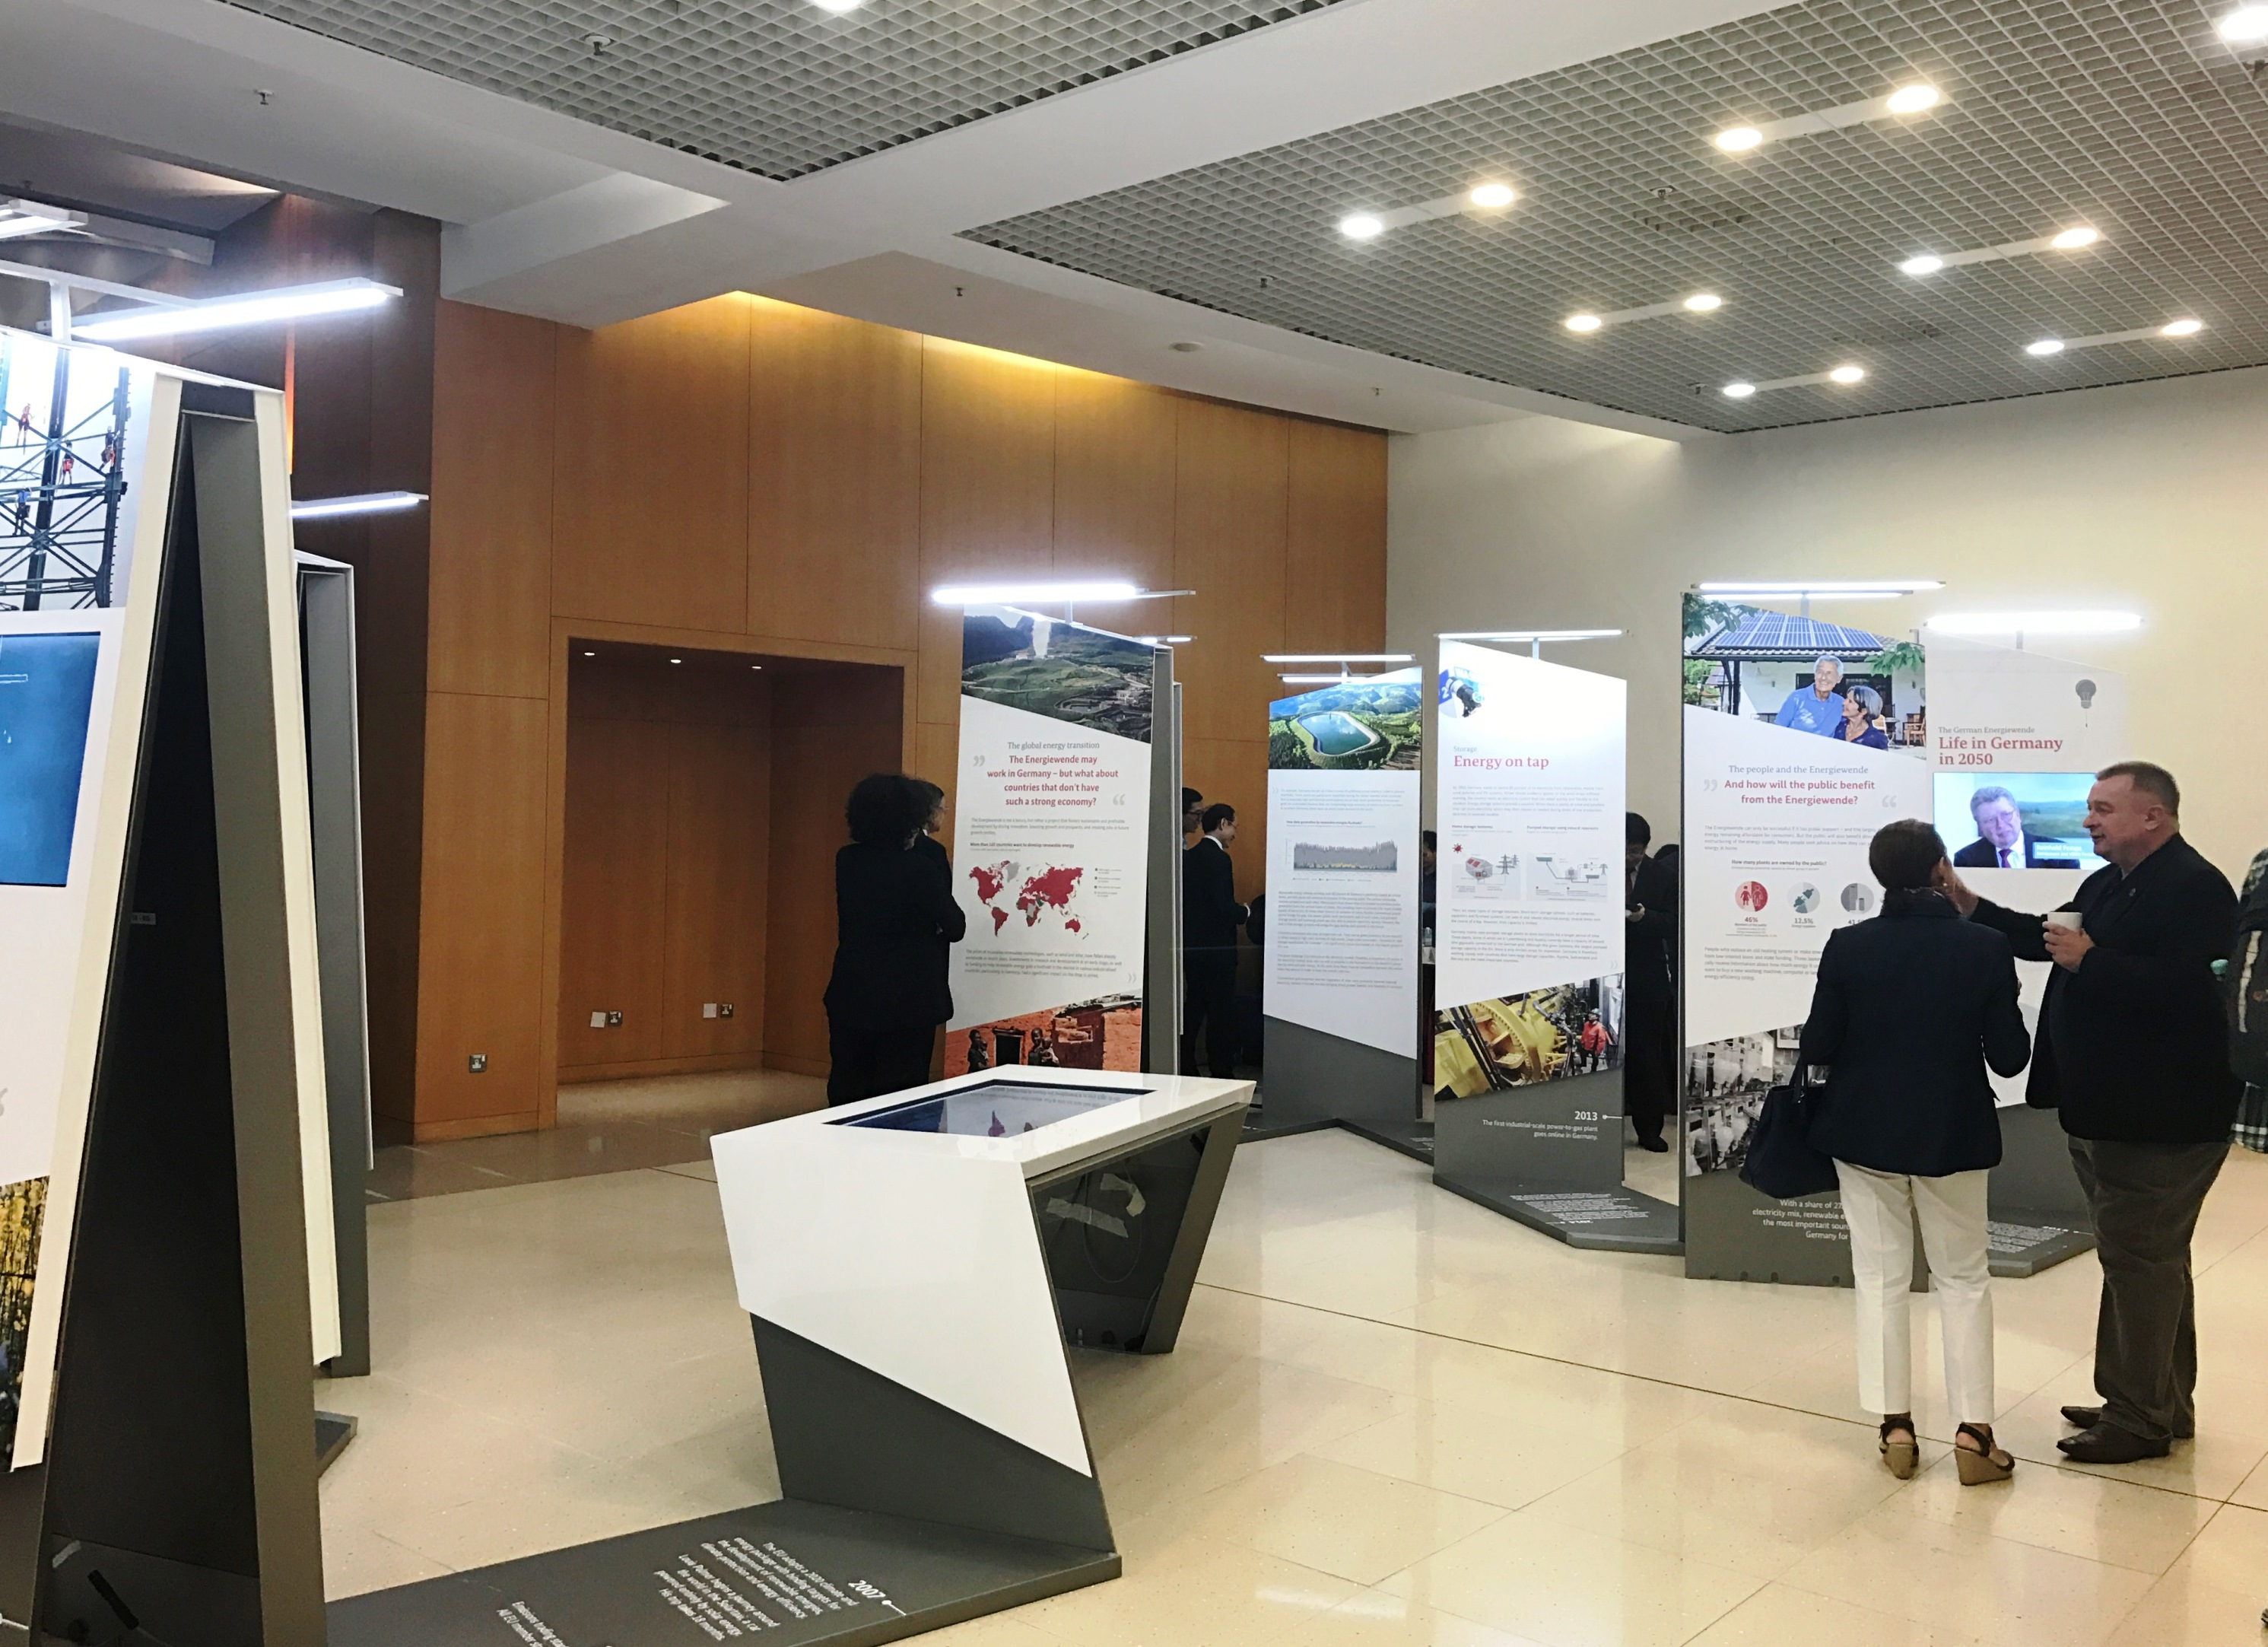 The Exhibition on Germany's Energy Transition.